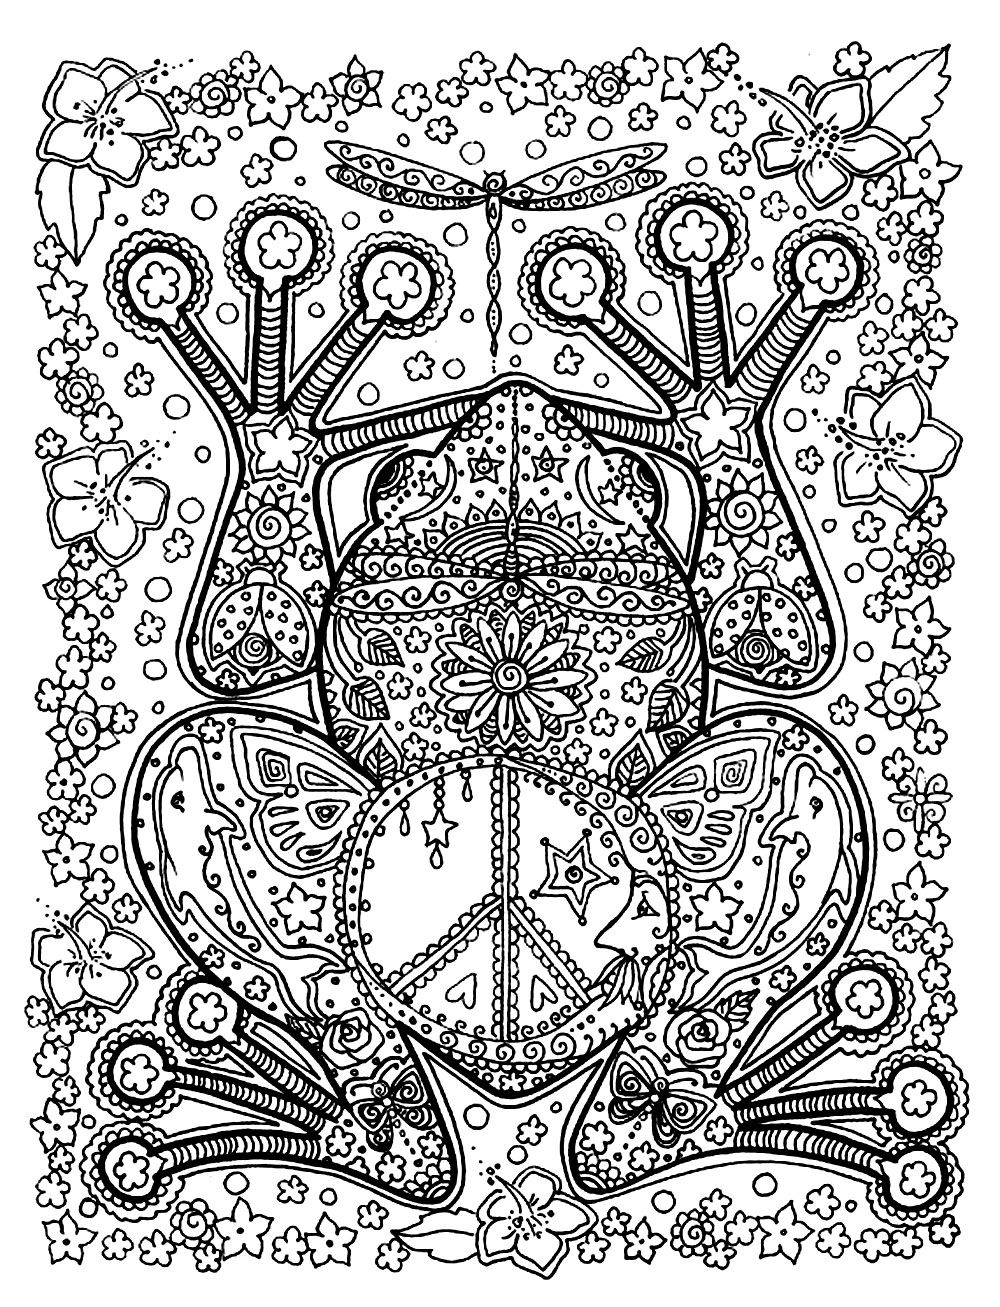 Adult Coloring Pages Animals Free Printables